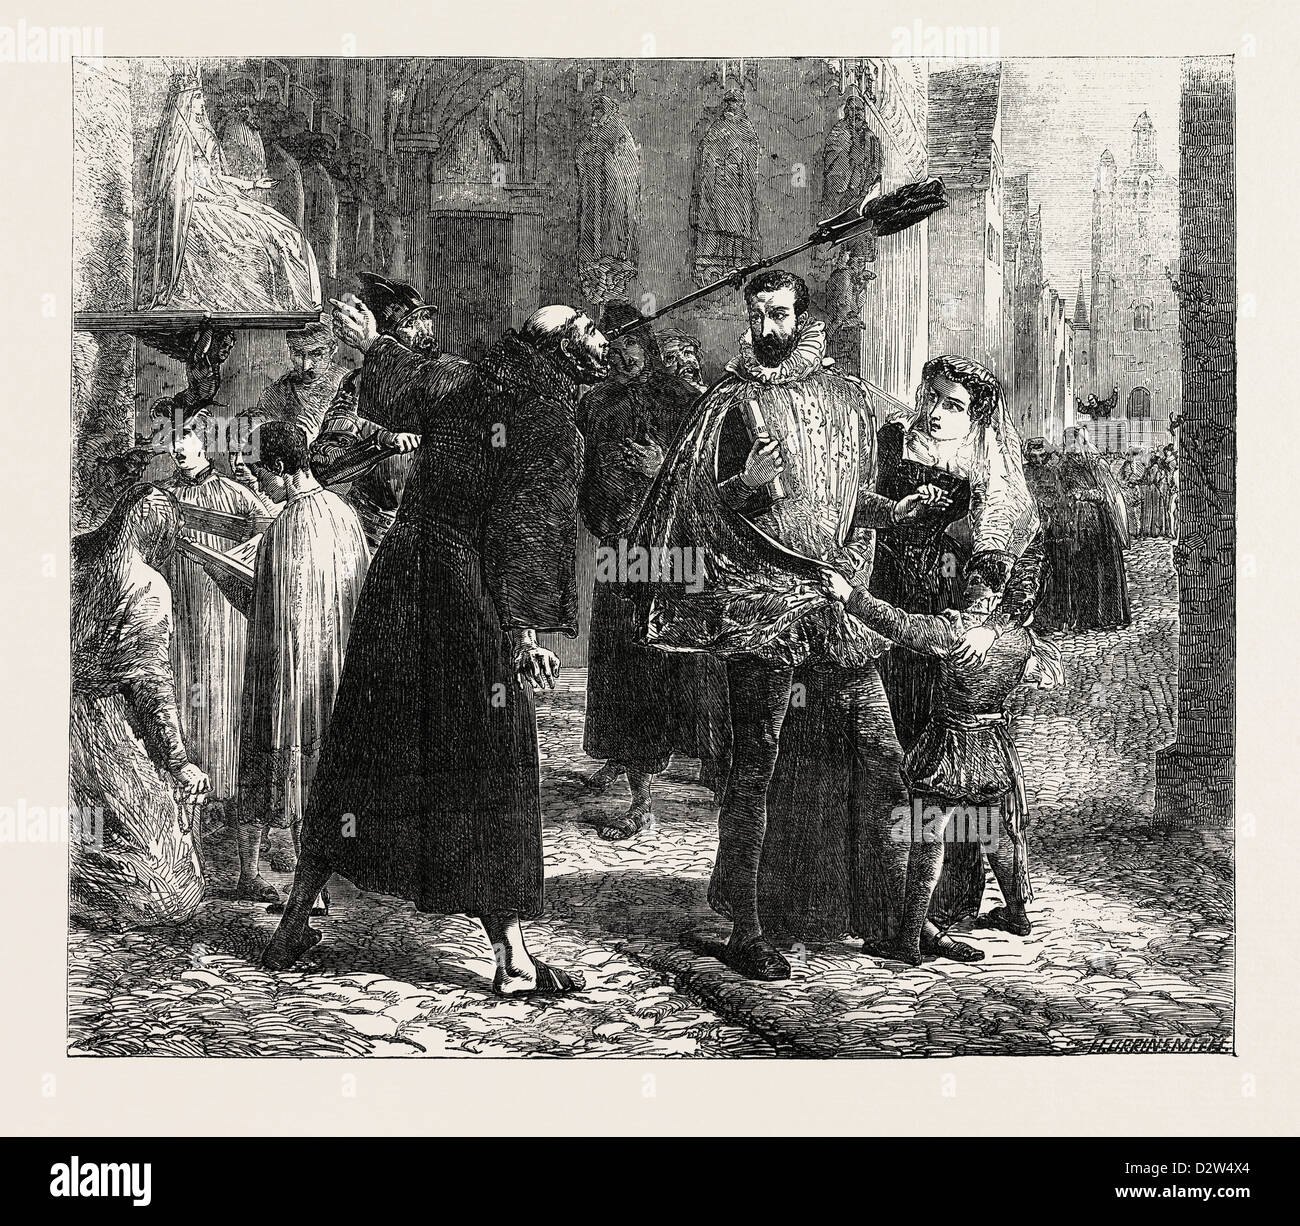 TIME OF THE PERSECUTION OF THE CHRISTIAN REFORMERS IN PARIS IN - Stock Image